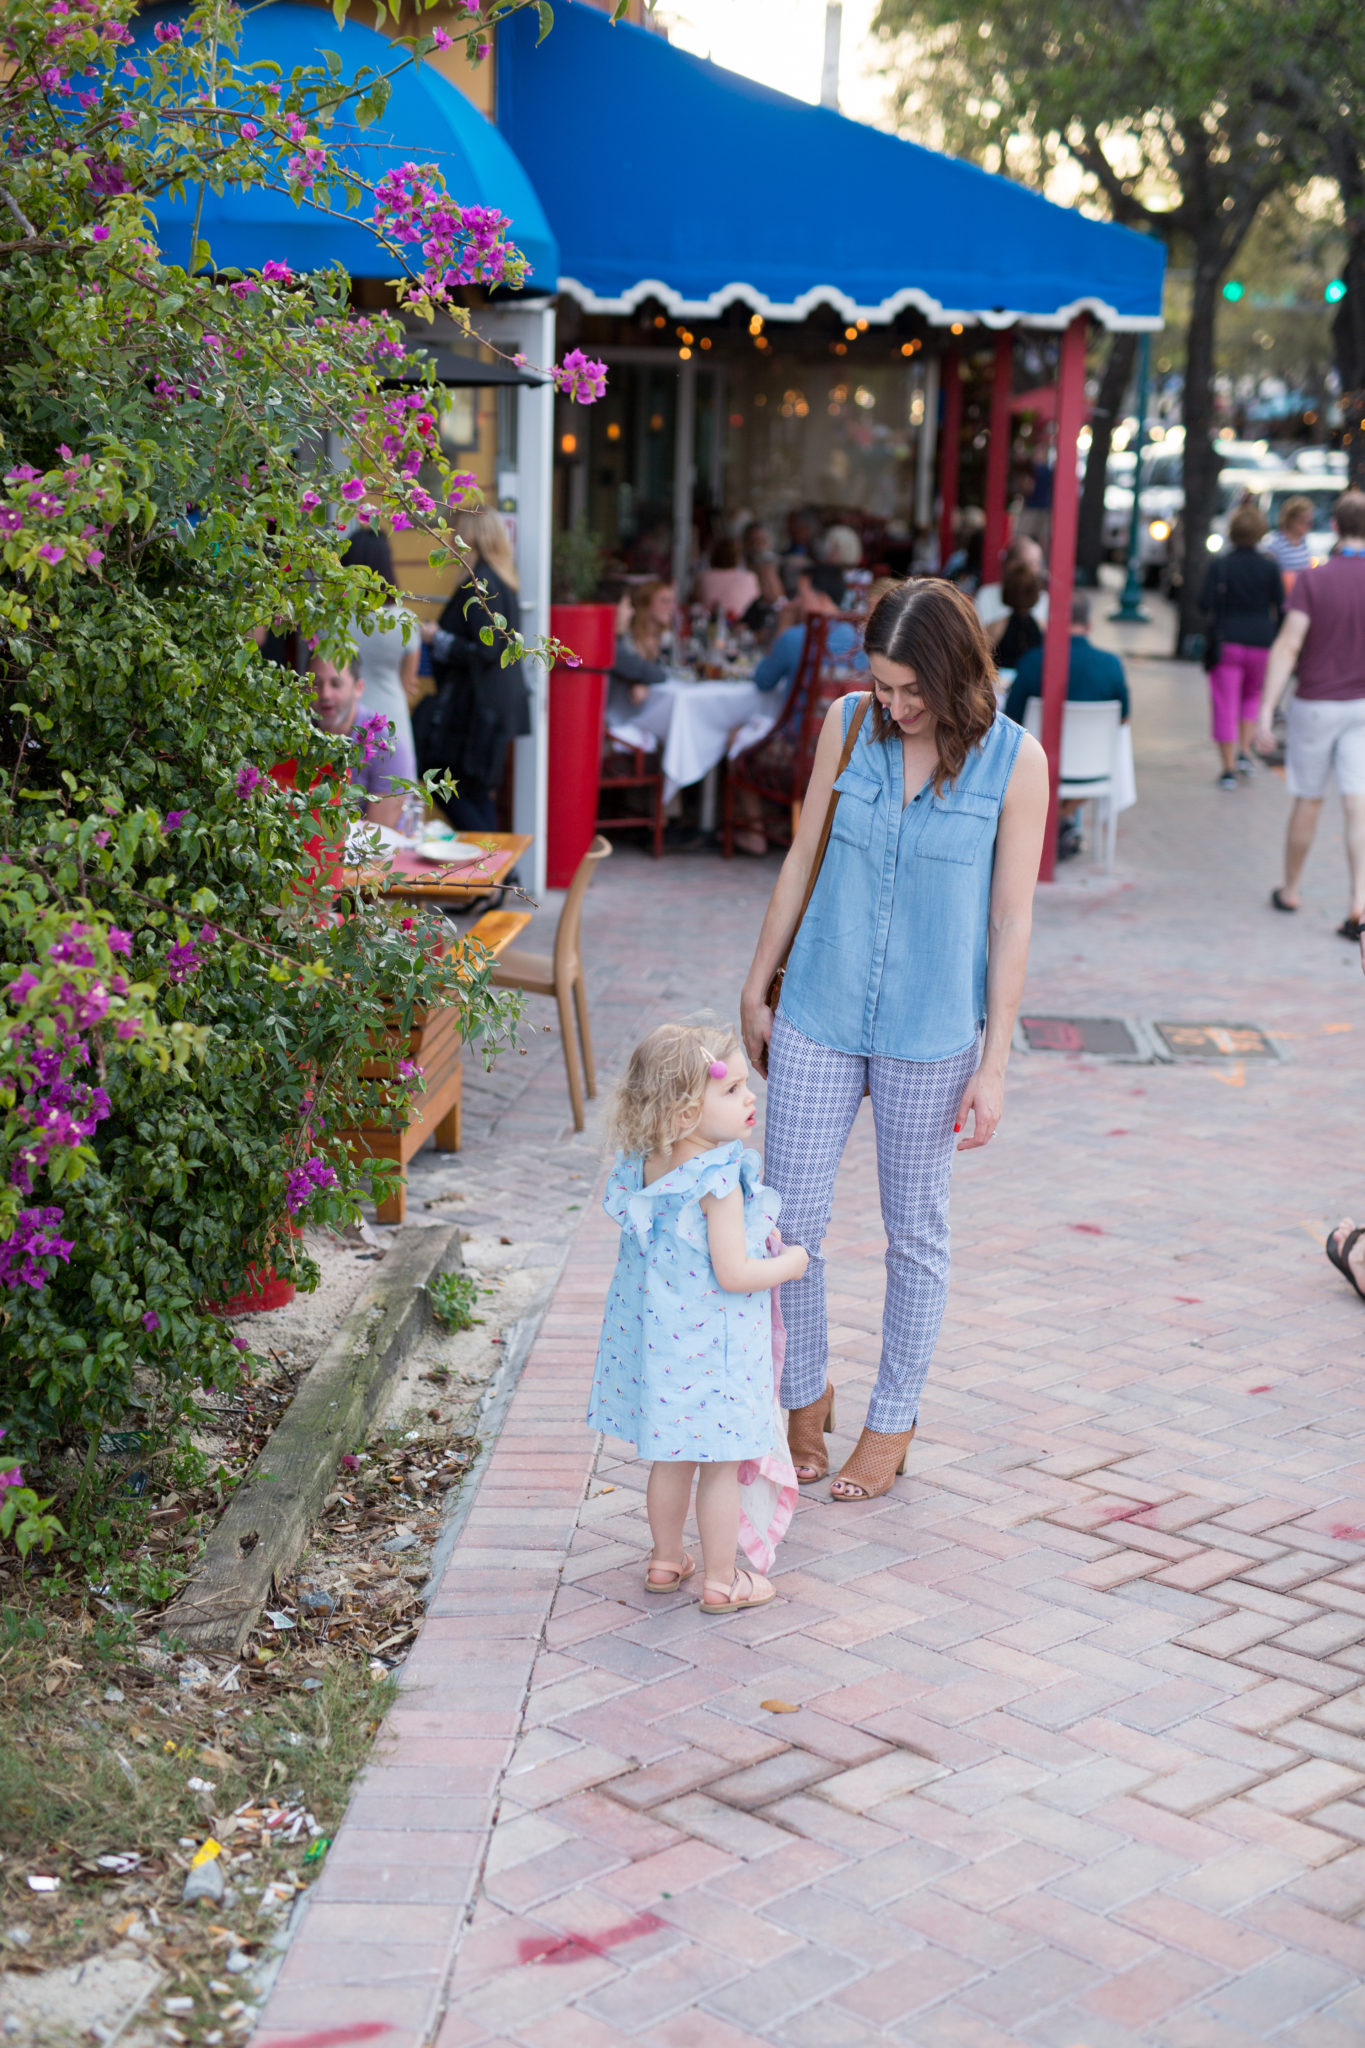 what to do and where to stay in delray beach florida   summer toddler style   summer style   beach style   west palm beach flordia   seagate hotel delray beach florida   family vacation with a toddler   margaret m slimming pants   pippa and indy bows for girls